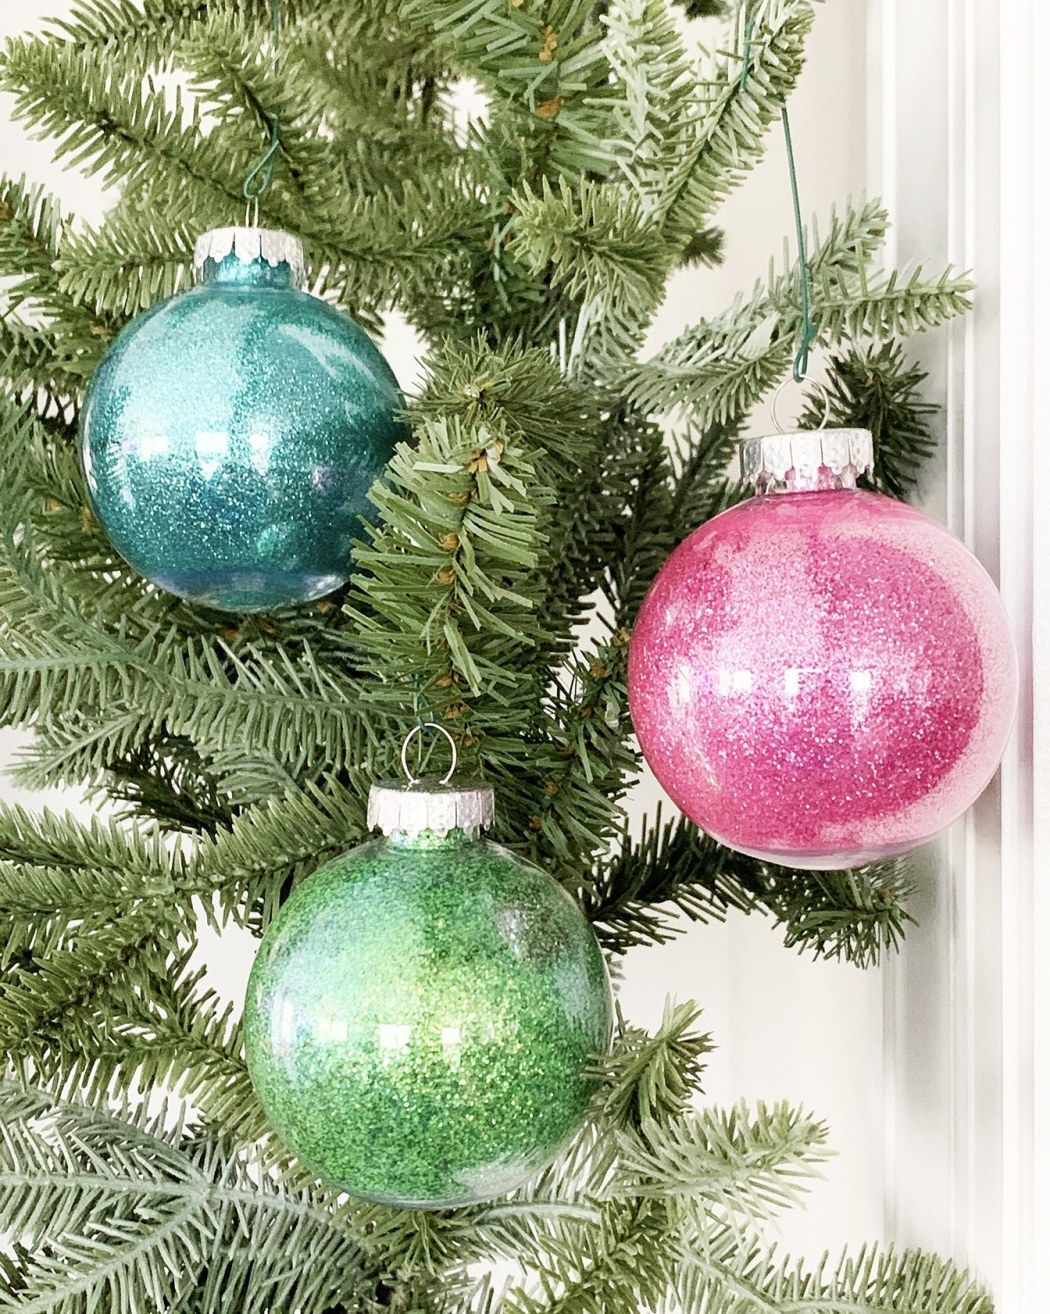 Easy Glitter Ornaments Best Glue to Use (With images